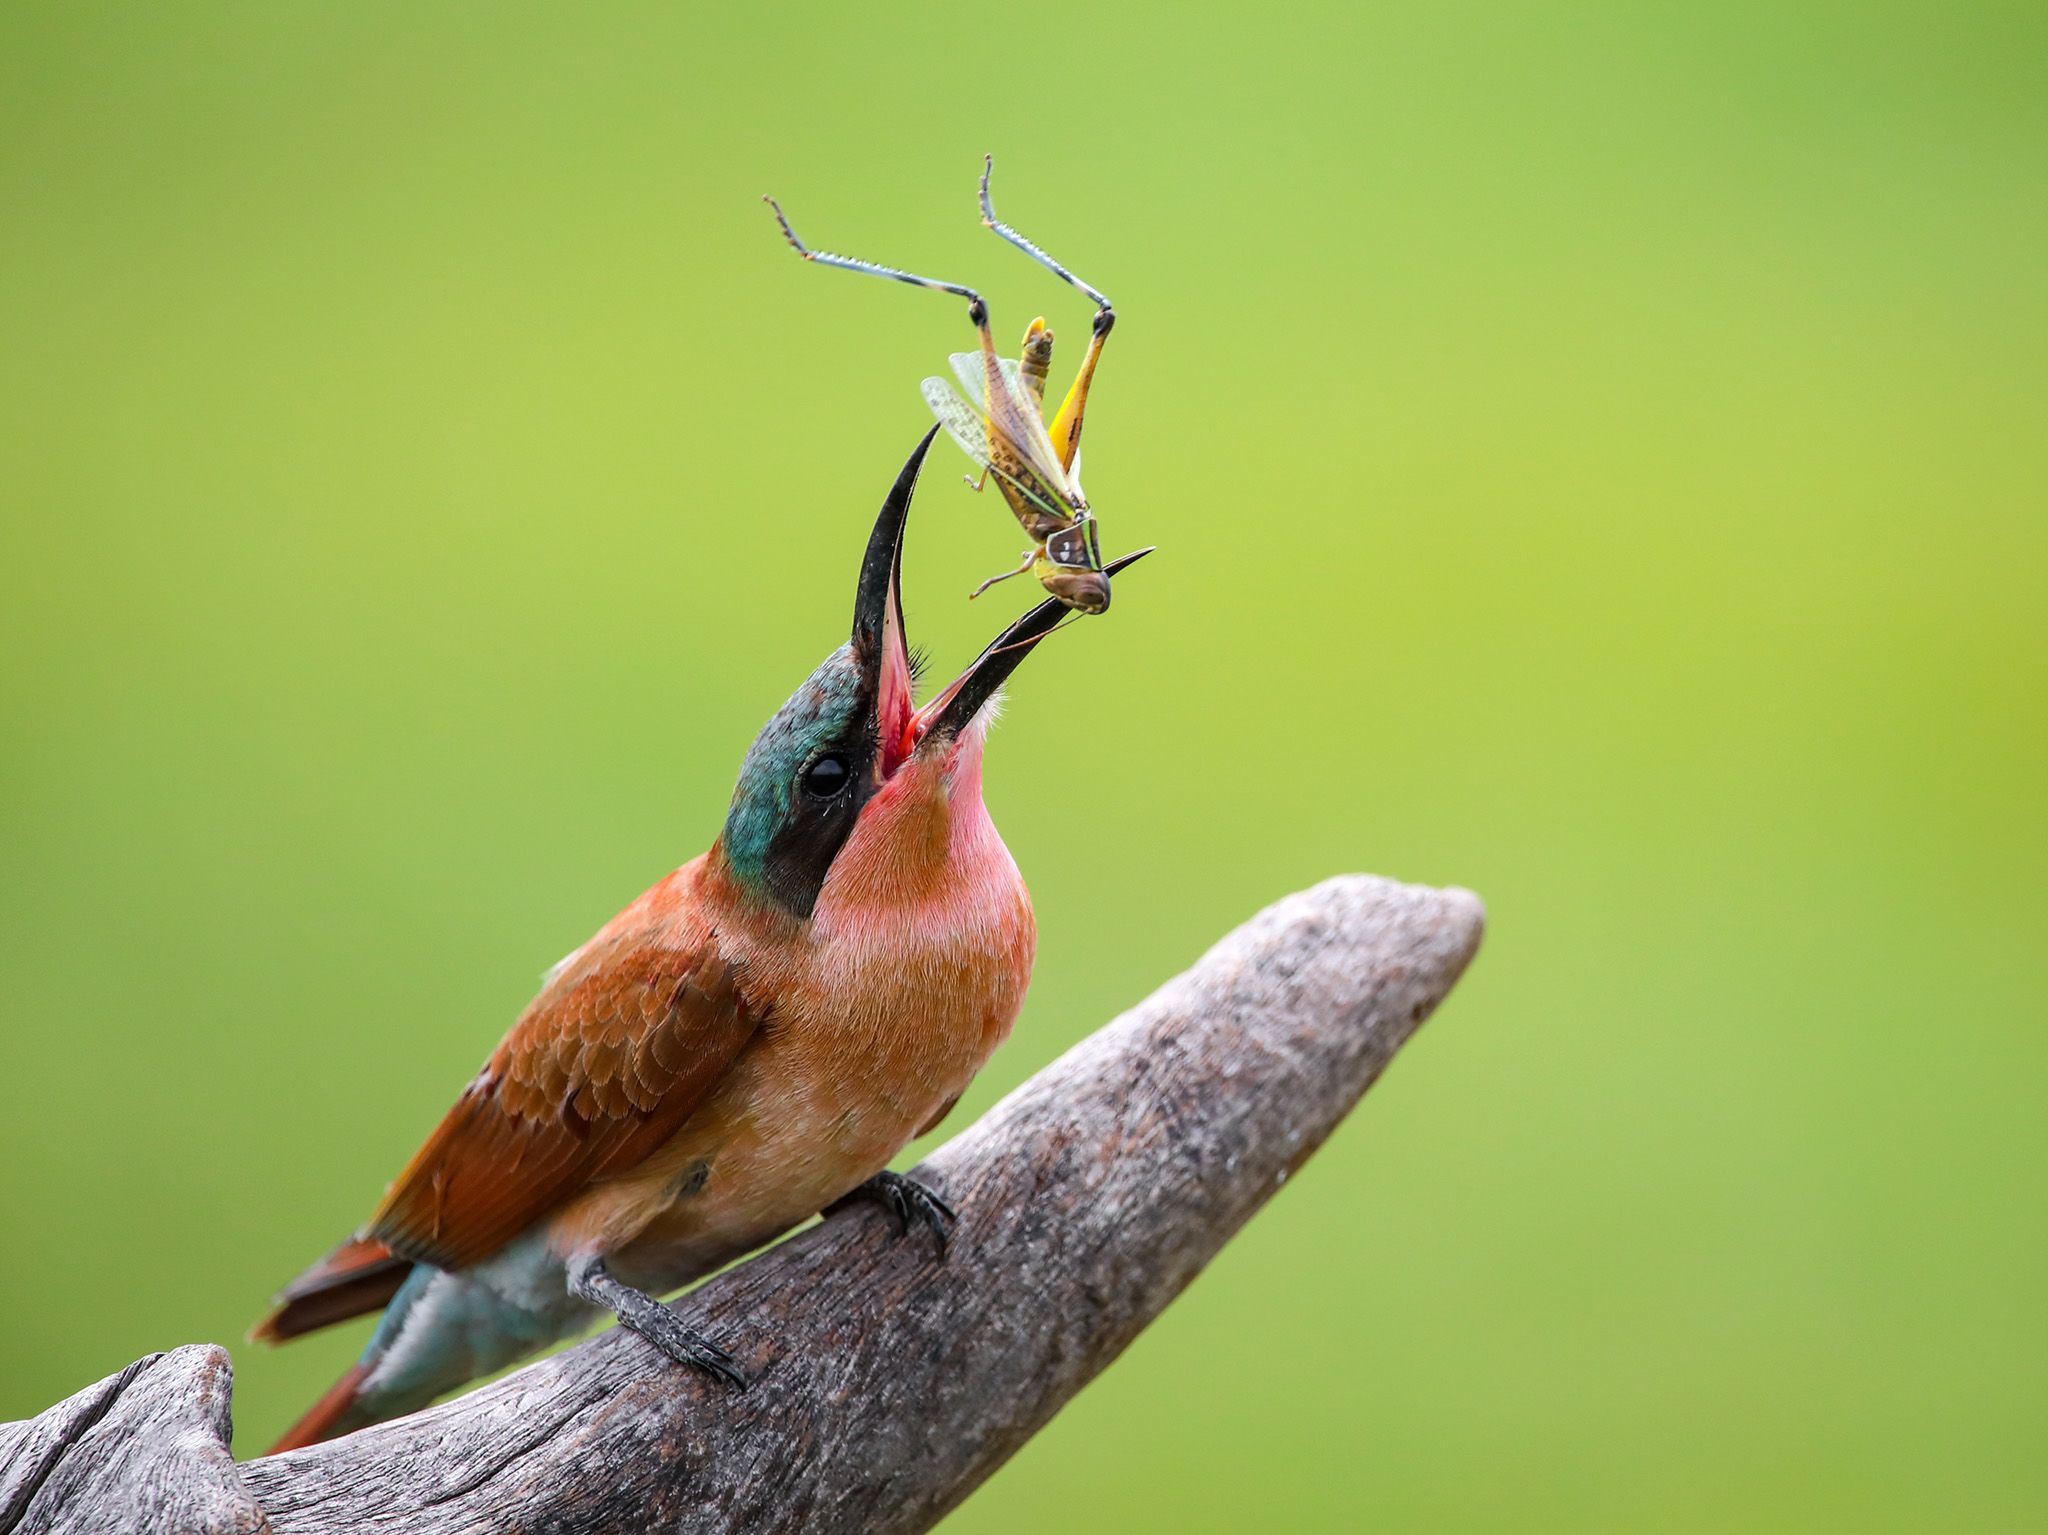 A Carmine Bee-eater tosses a grasshopper into the air, rearranging it to knock off the sharp... [Photo of the day - October 2020]